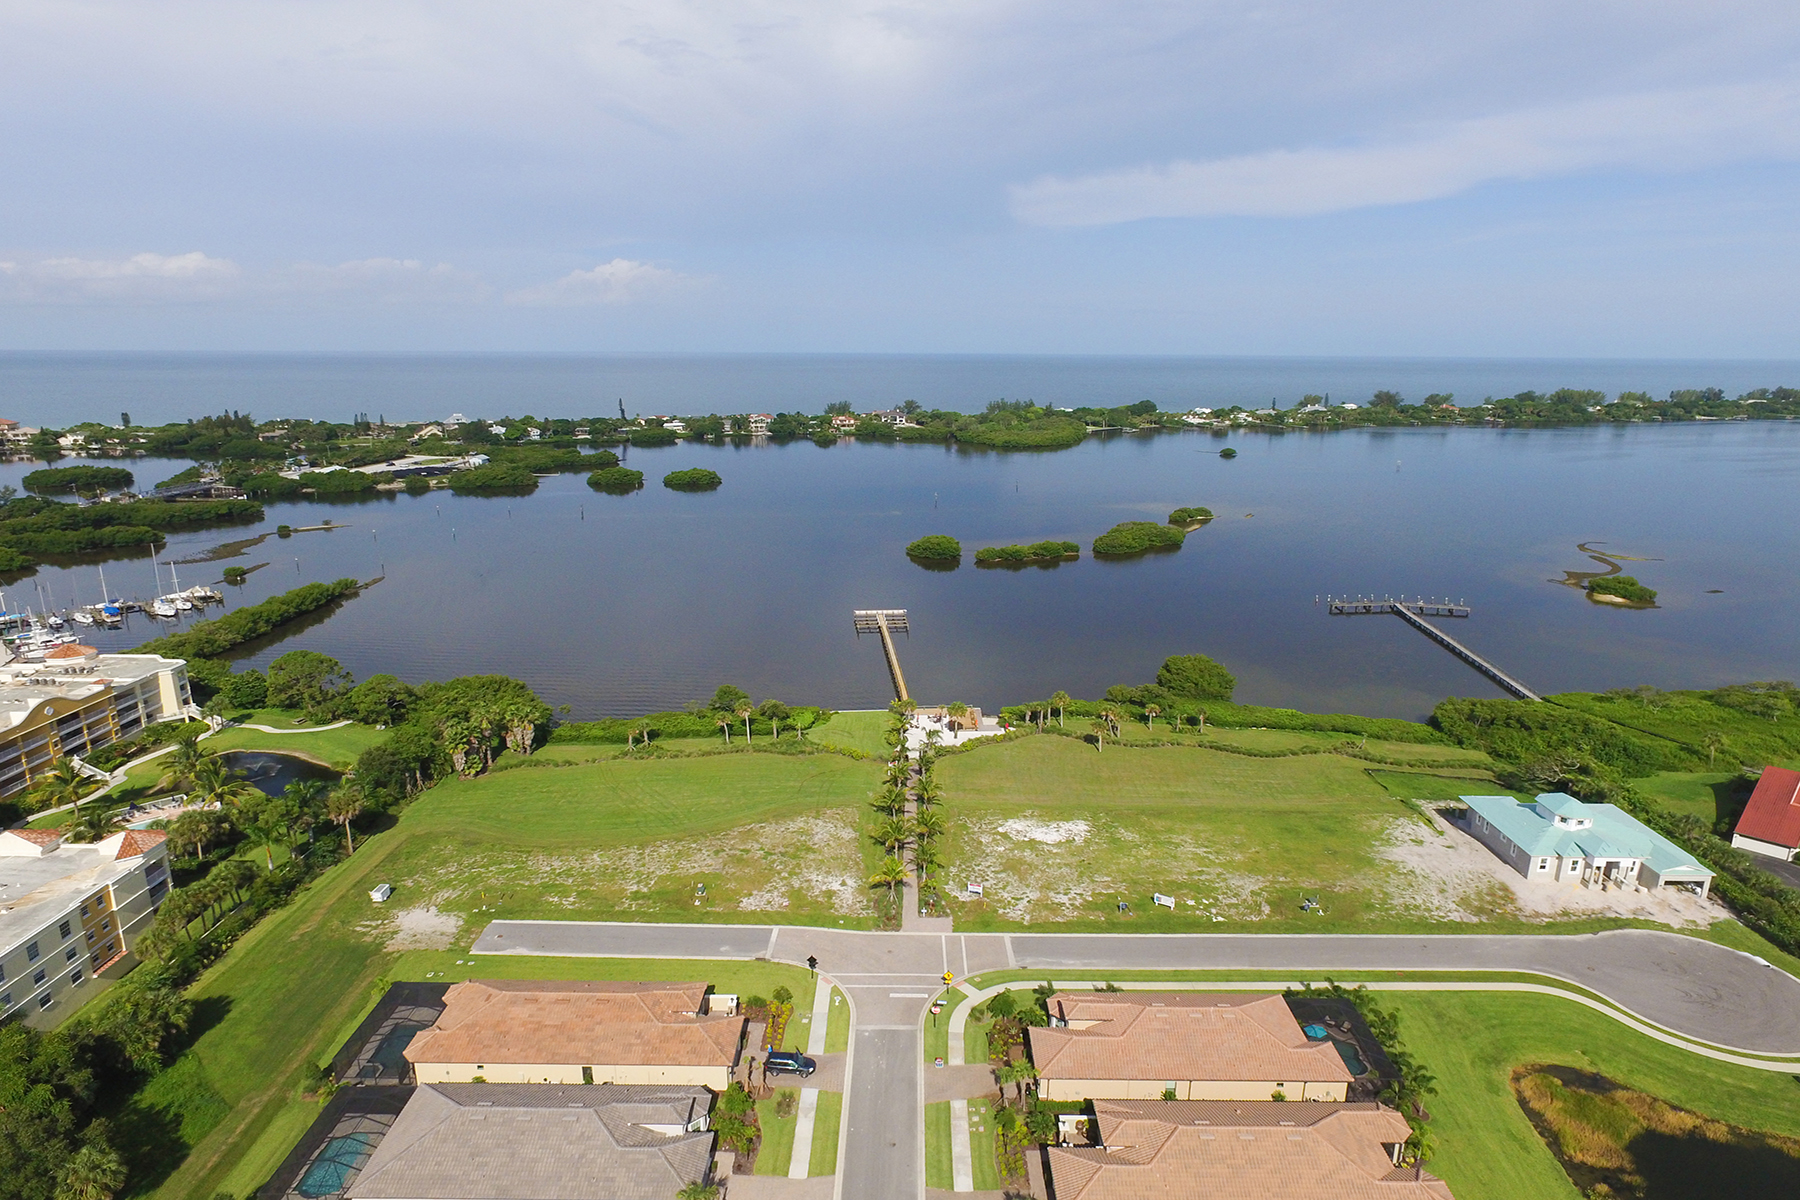 Land for Sale at BAYSIDE 14405 Masthead Dr 37, Osprey, Florida, 34229 United States